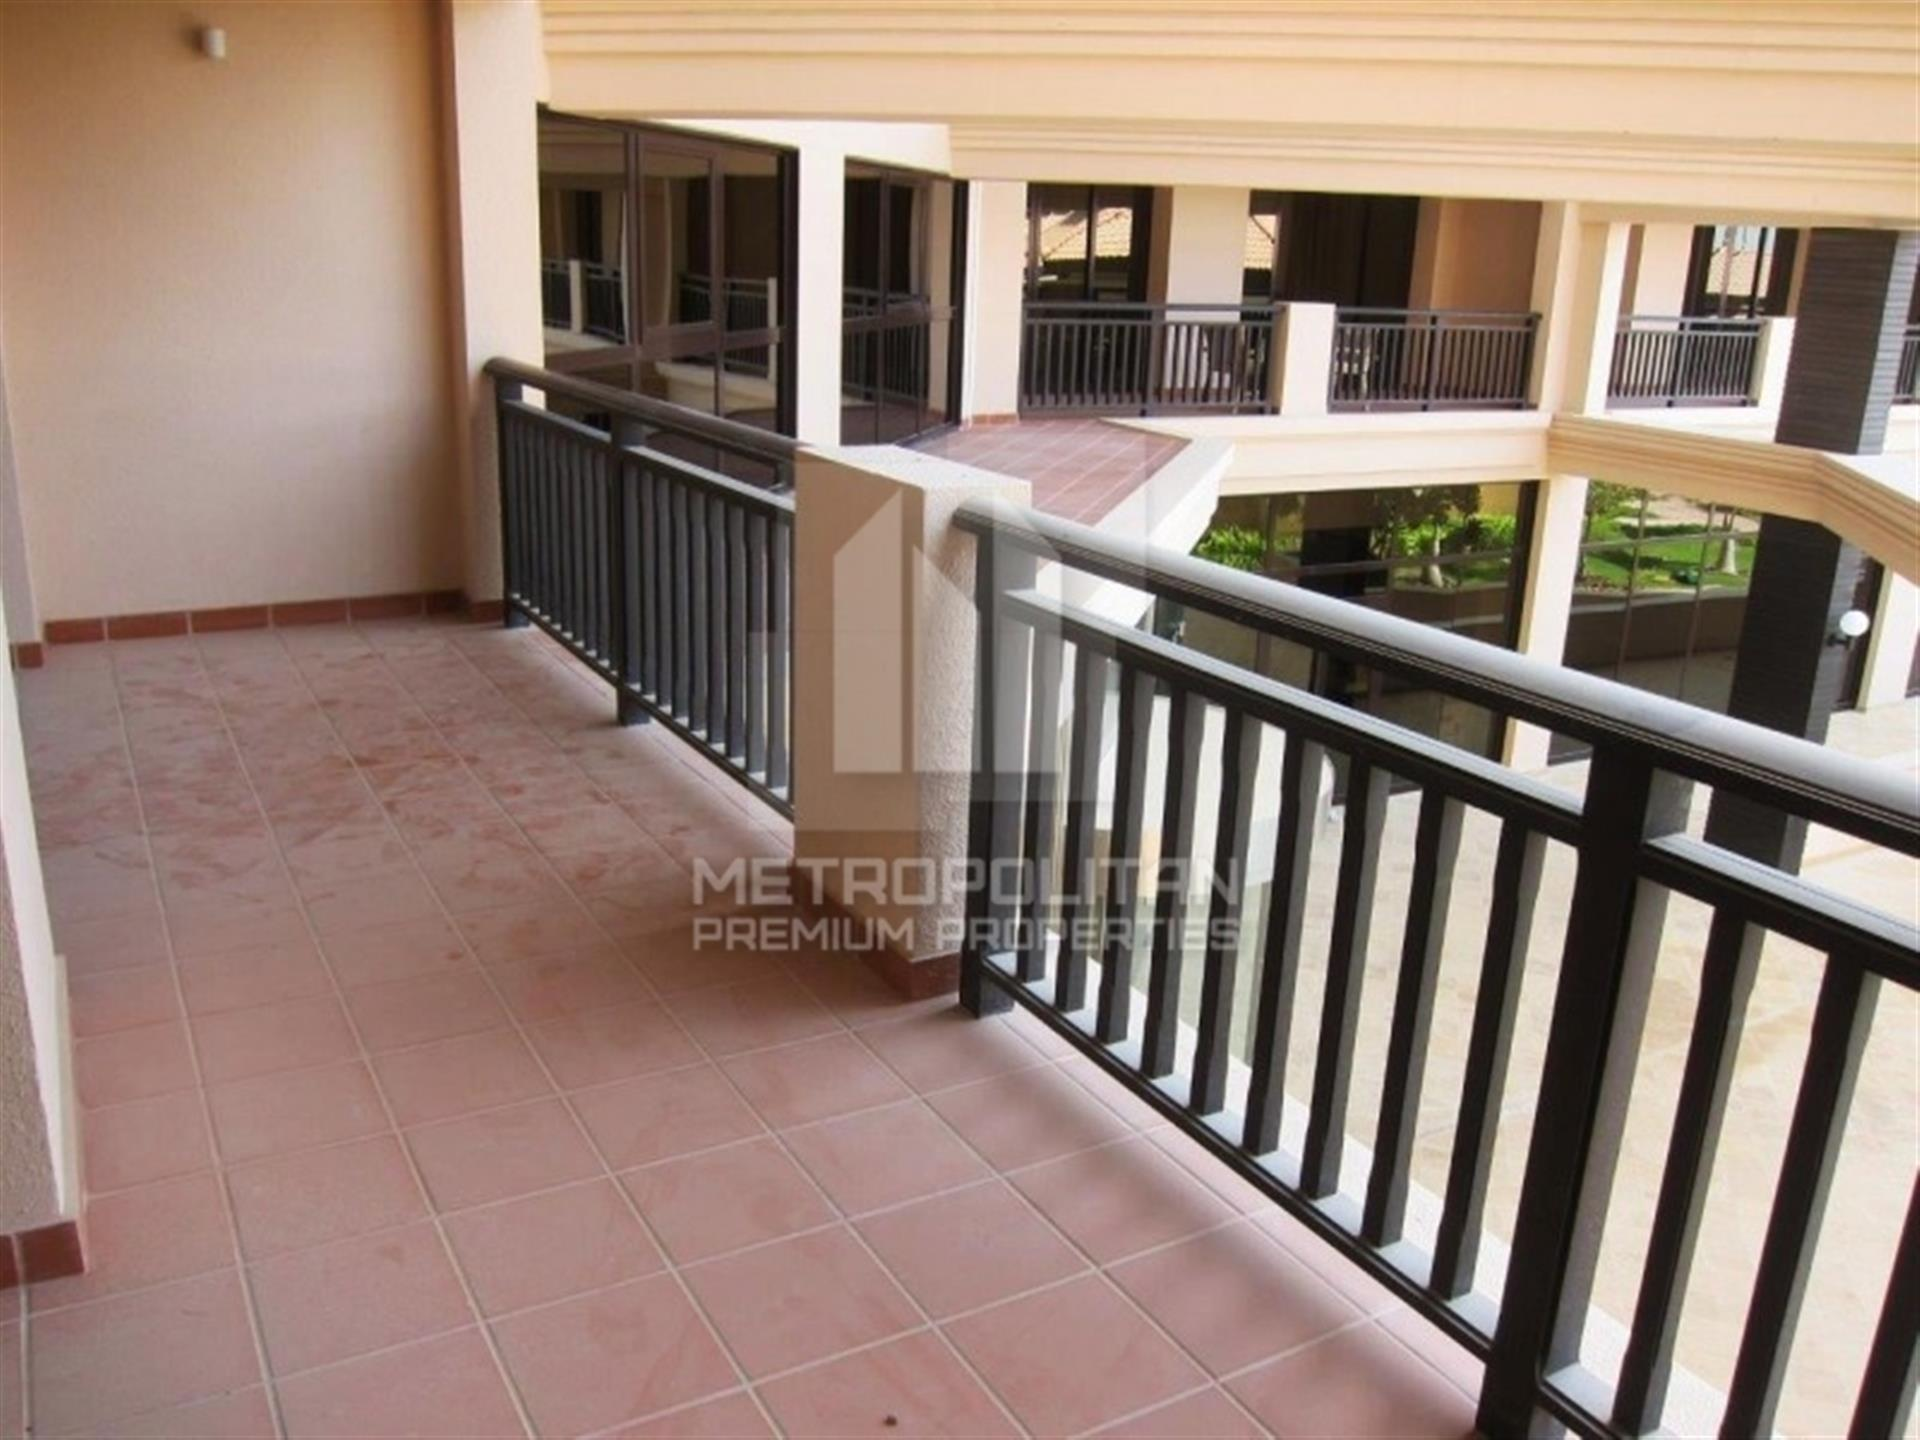 Standard Seaview 1 Bedroom Apartment   (Avai ( (Availability Confirmed 10/16/2014)